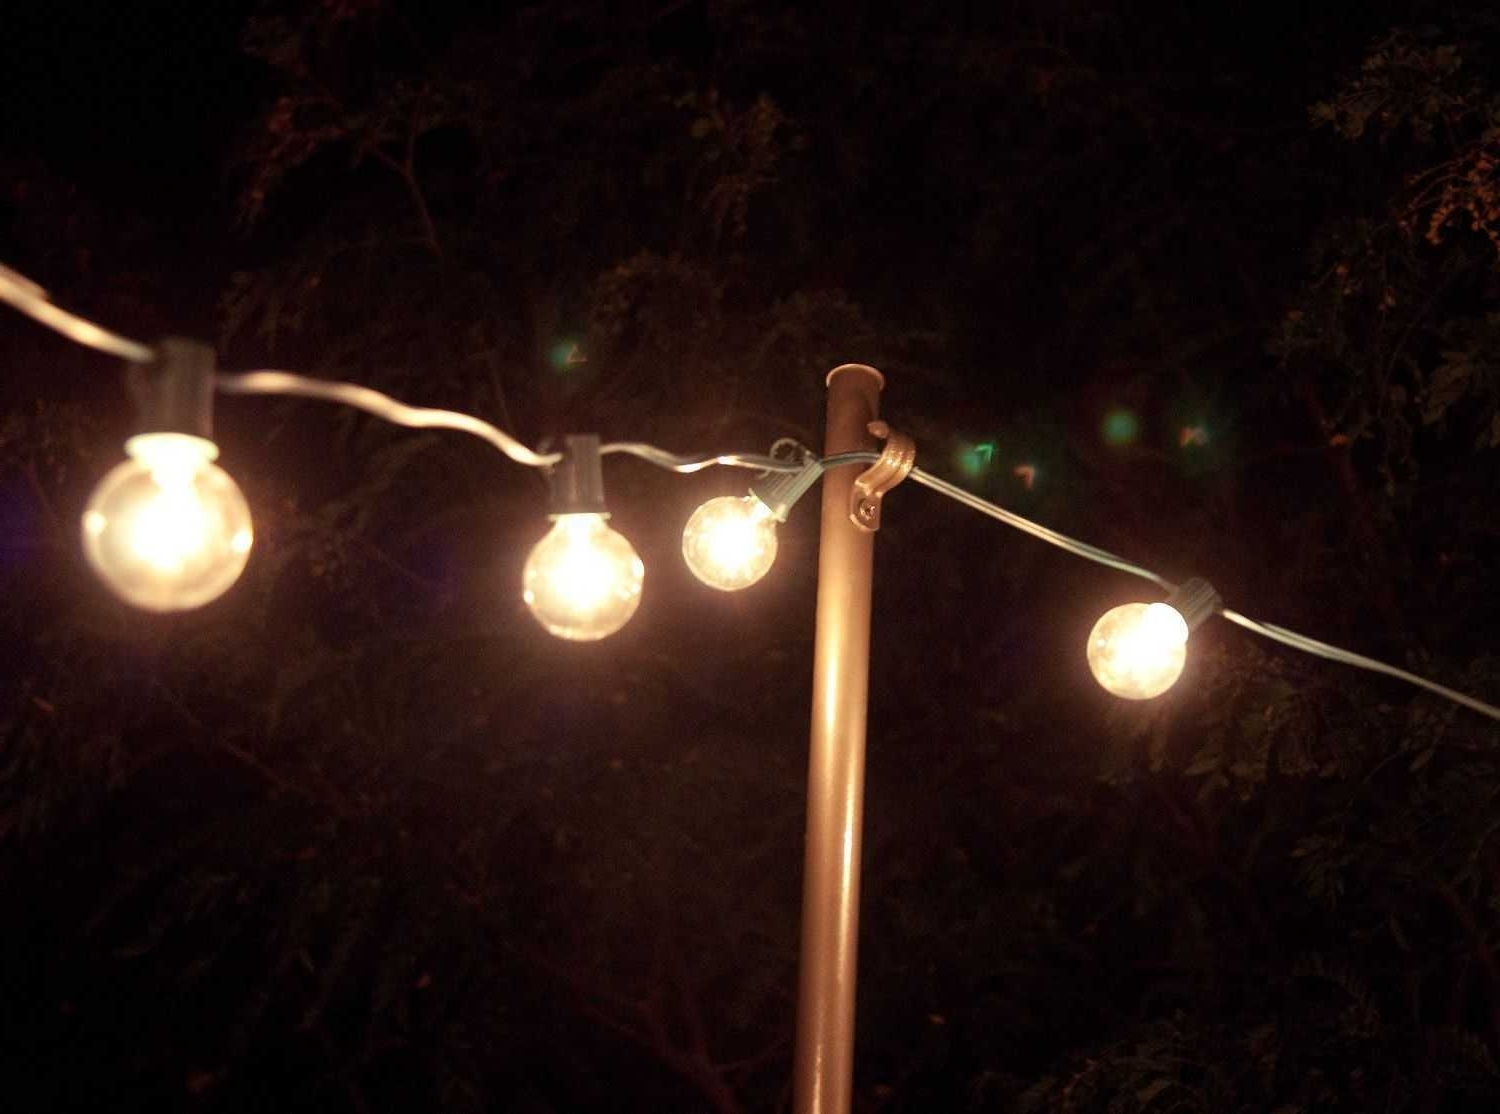 Well Known Hanging Outdoor Lights Without Nails With Regard To Enchanting Best Way Hang String Lights Outdoors Ideas And On Patio (View 17 of 20)